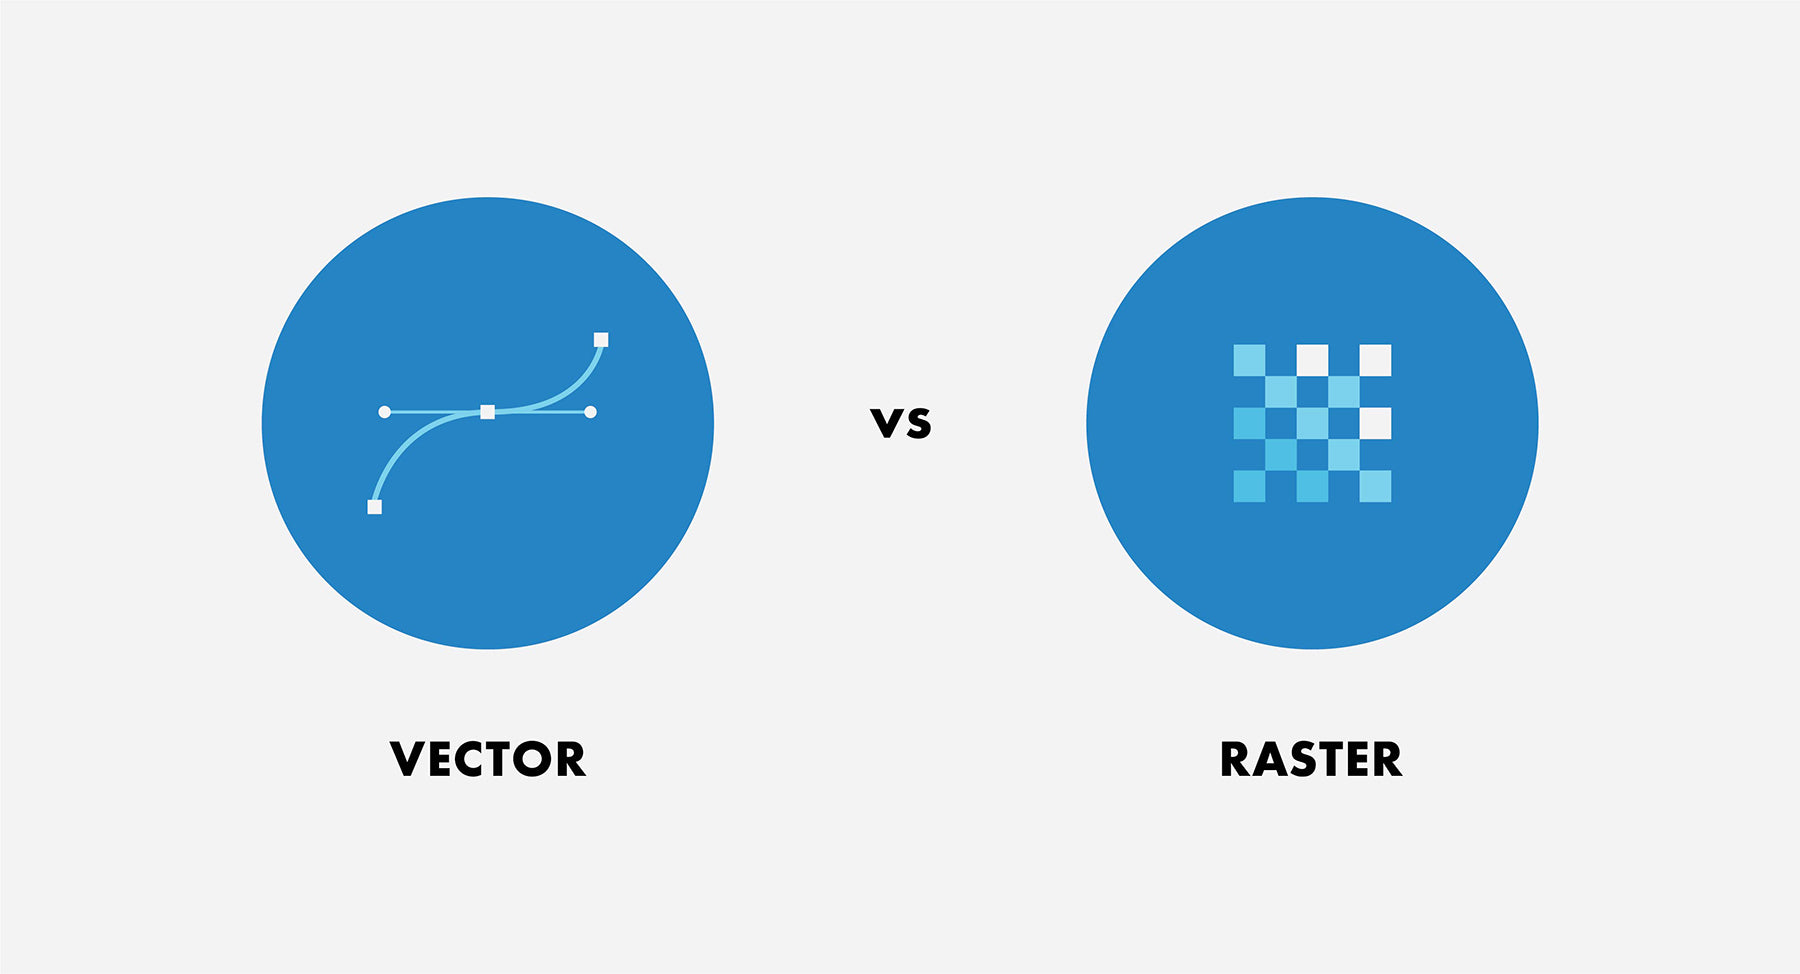 What is the difference between Vector and Raster images